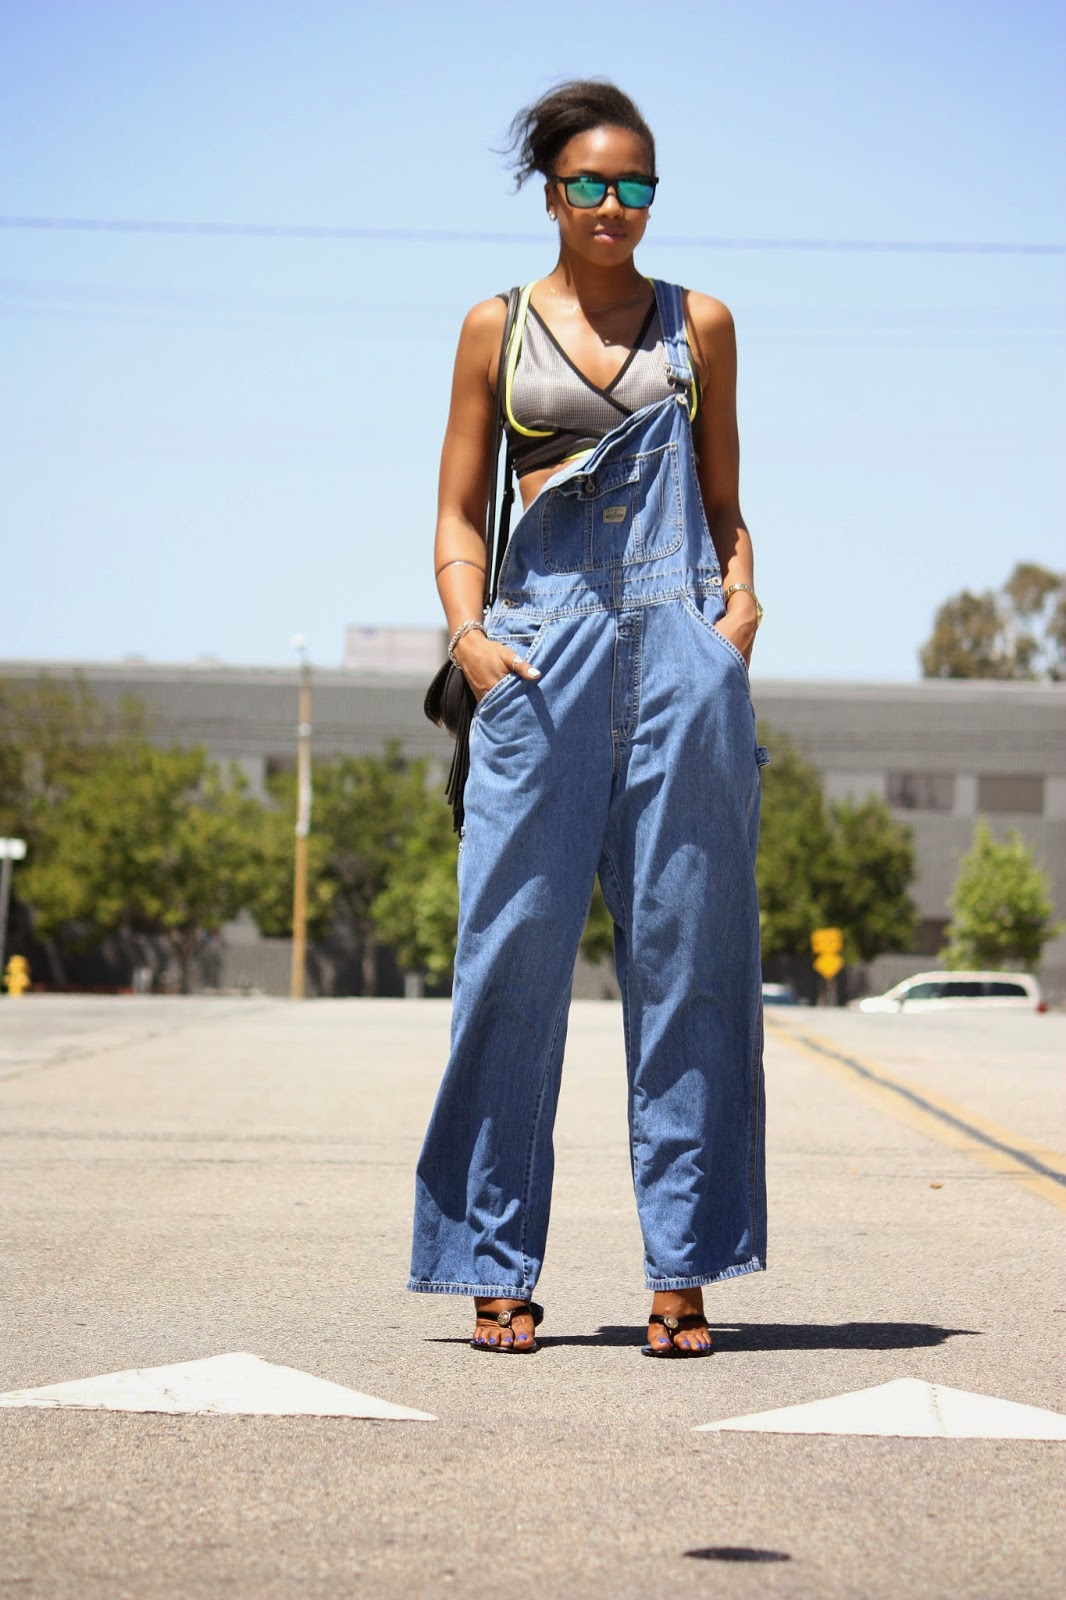 Outfit Details // H&M mens sunglasses, Alexander Wang x H&M sports bra, Oldnavy overalls